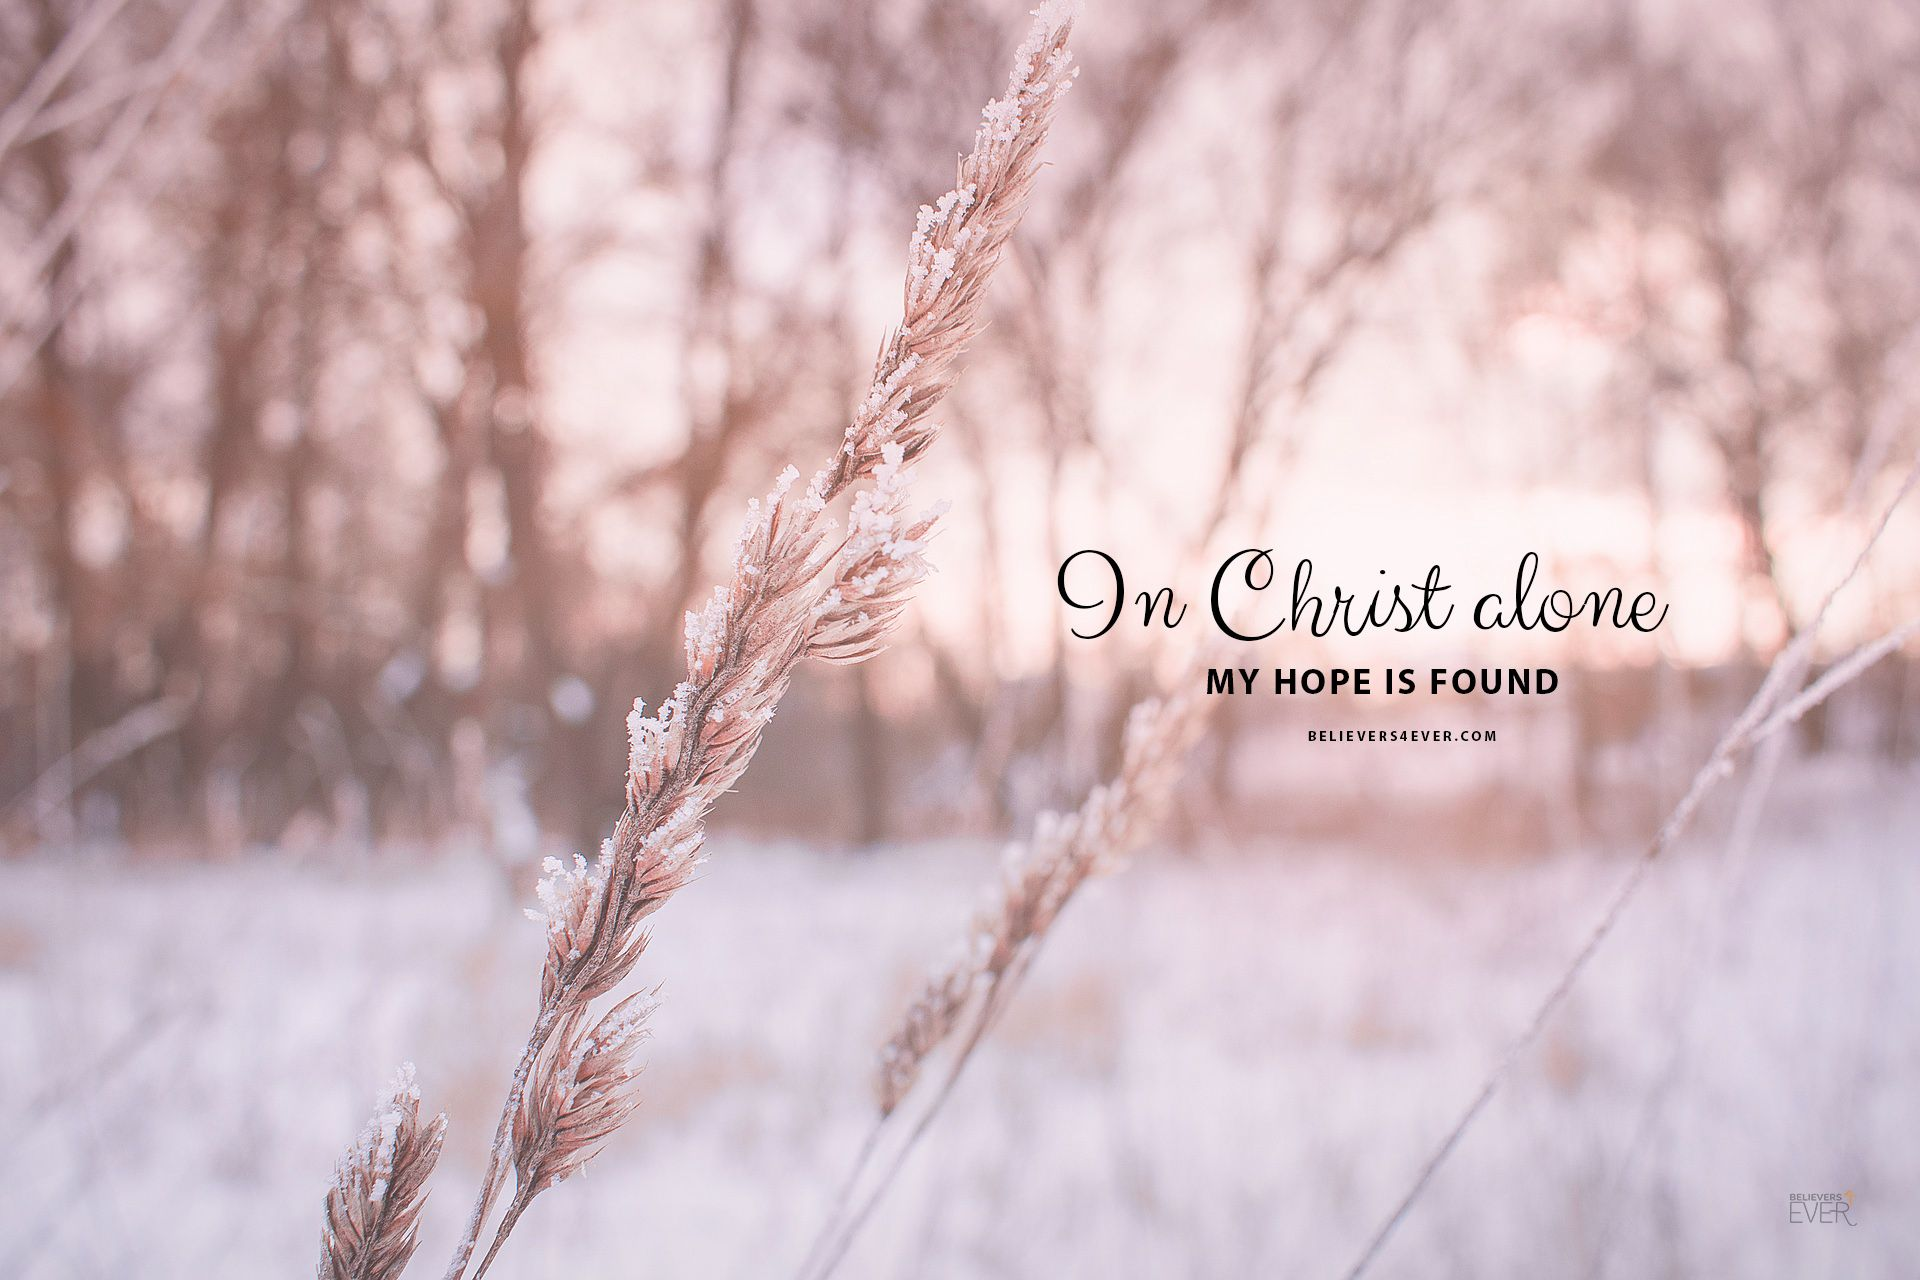 In Christ Alone My Hope Is Found Believers4ever Com Christian Wallpaper Bible Verse Desktop Wallpaper Bible Quotes Wallpaper